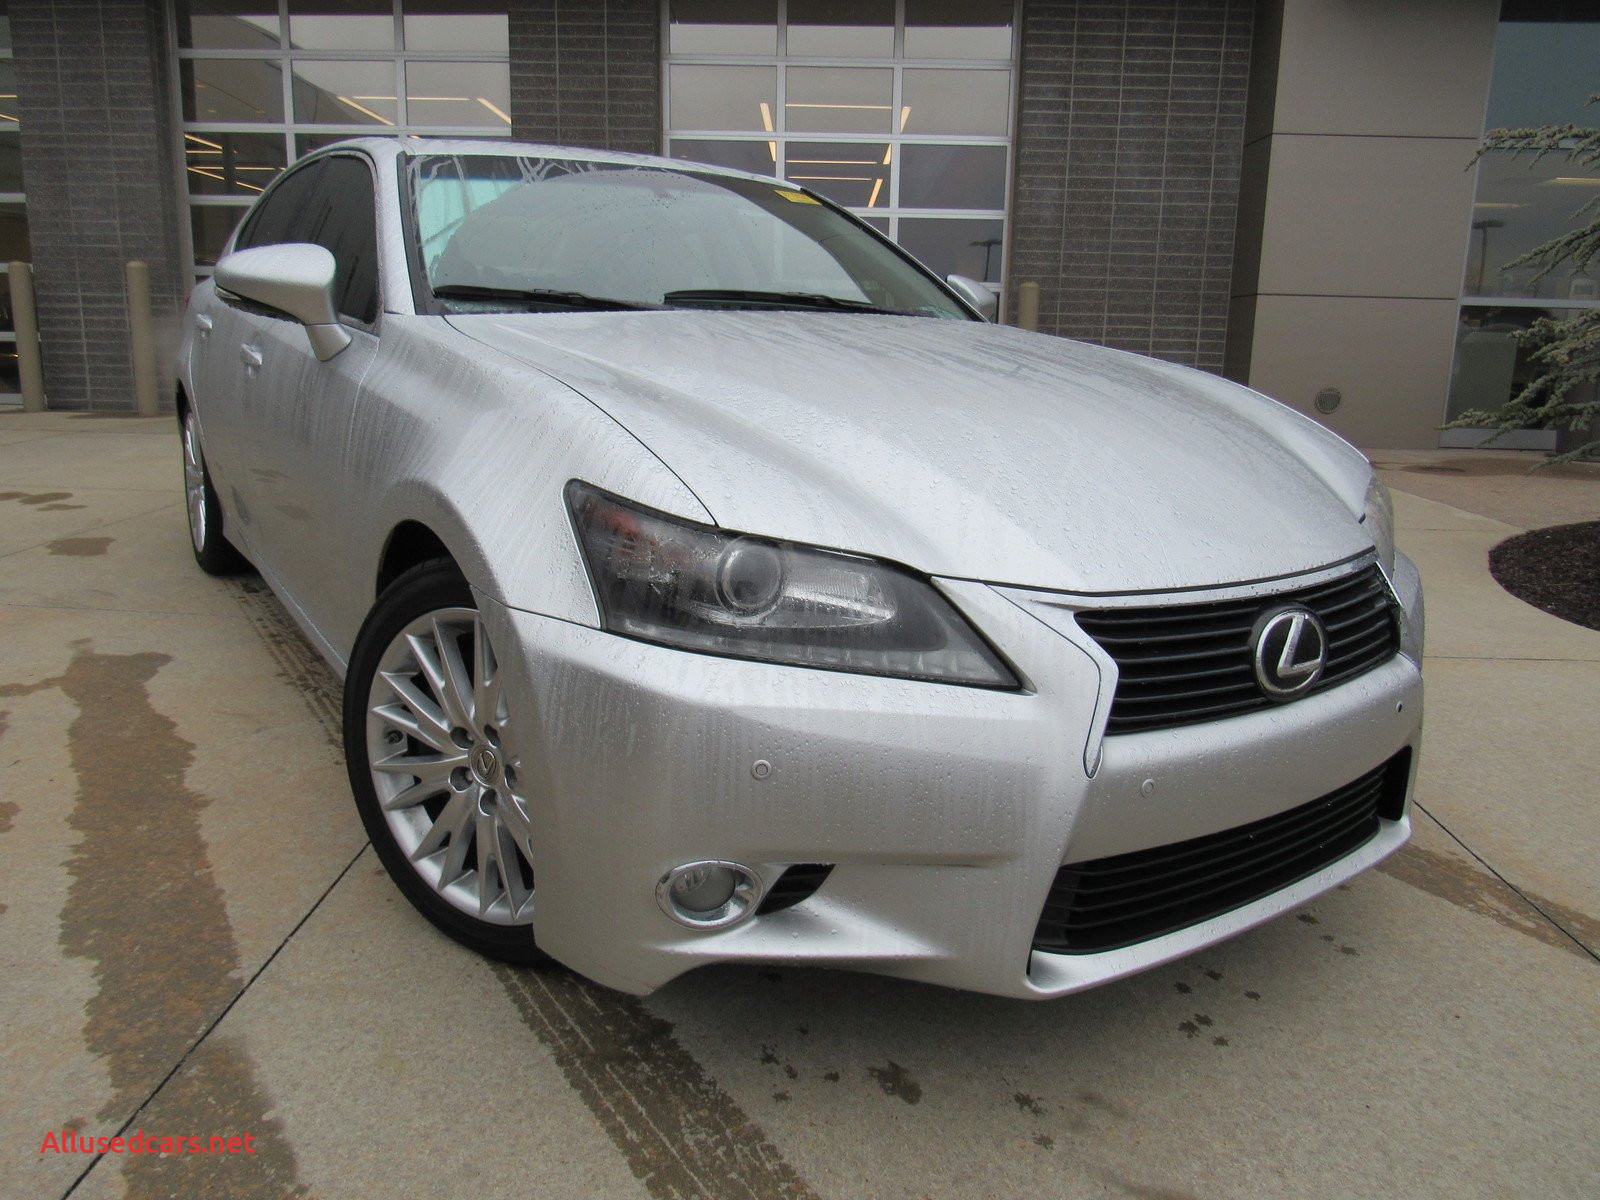 2013 Lexus Gs 350 Awesome Pre Owned 2013 Lexus Gs 350 4dr Sdn Rwd